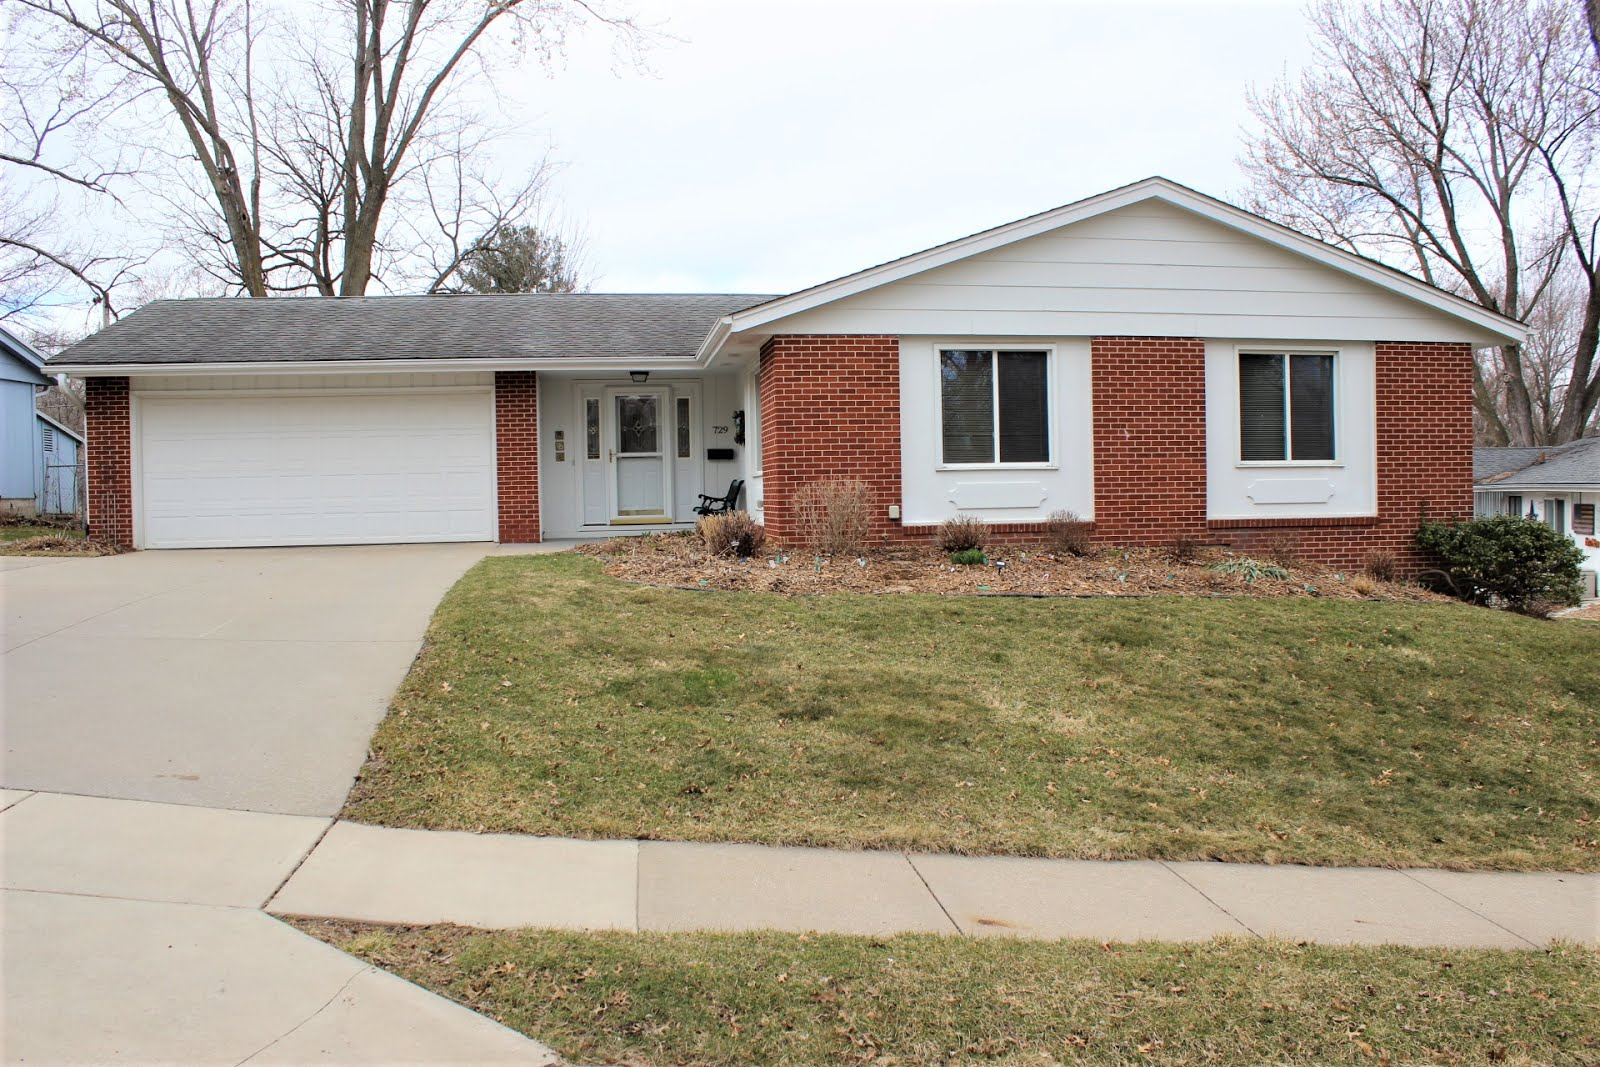 729 Alpine Dr. Iowa City, IA 52245 $268,000